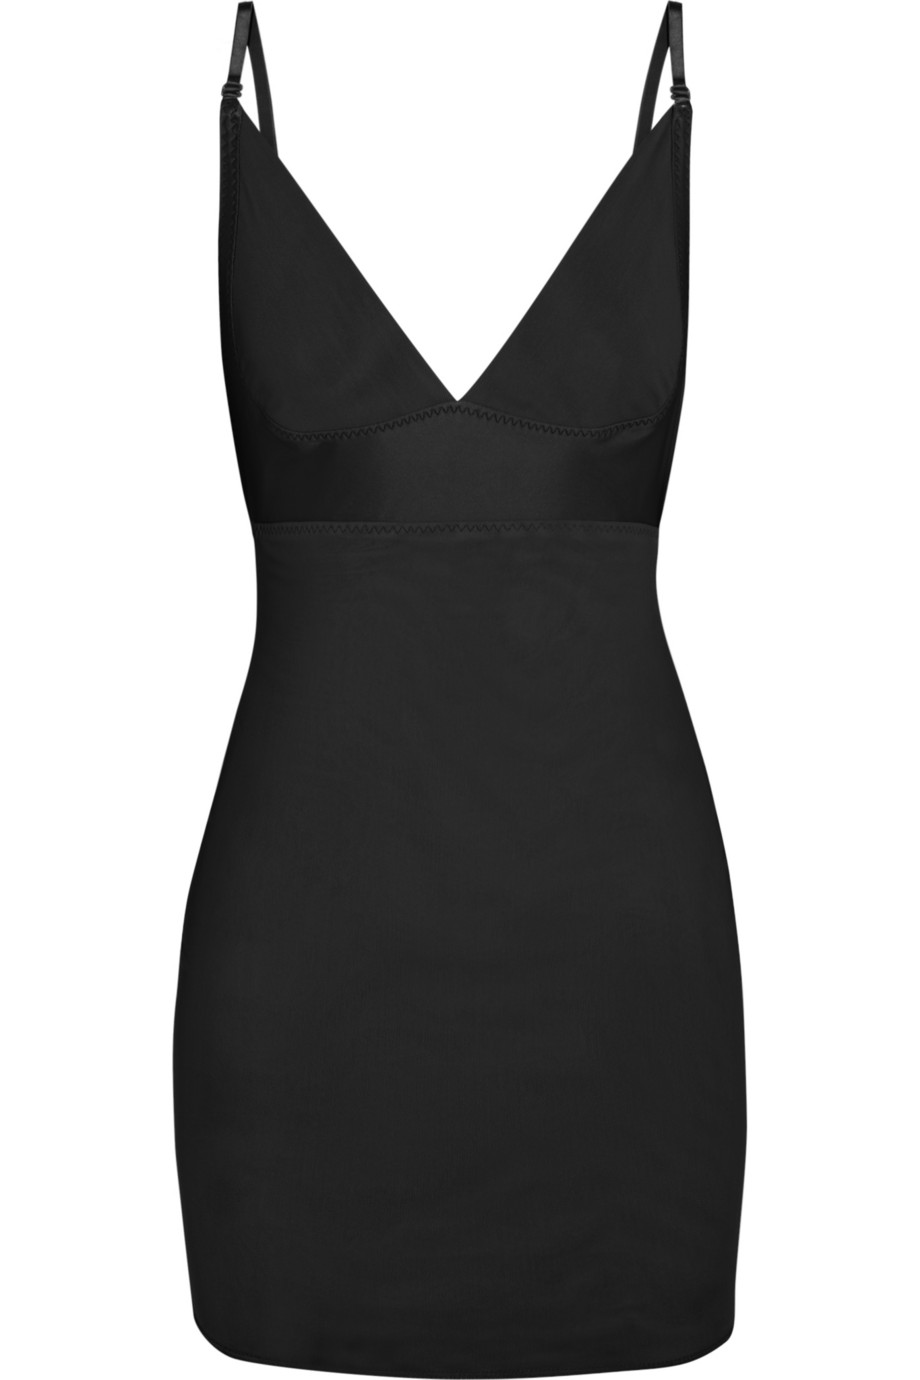 underwear solutions for new years eve dresses what to With fond de robe gainant